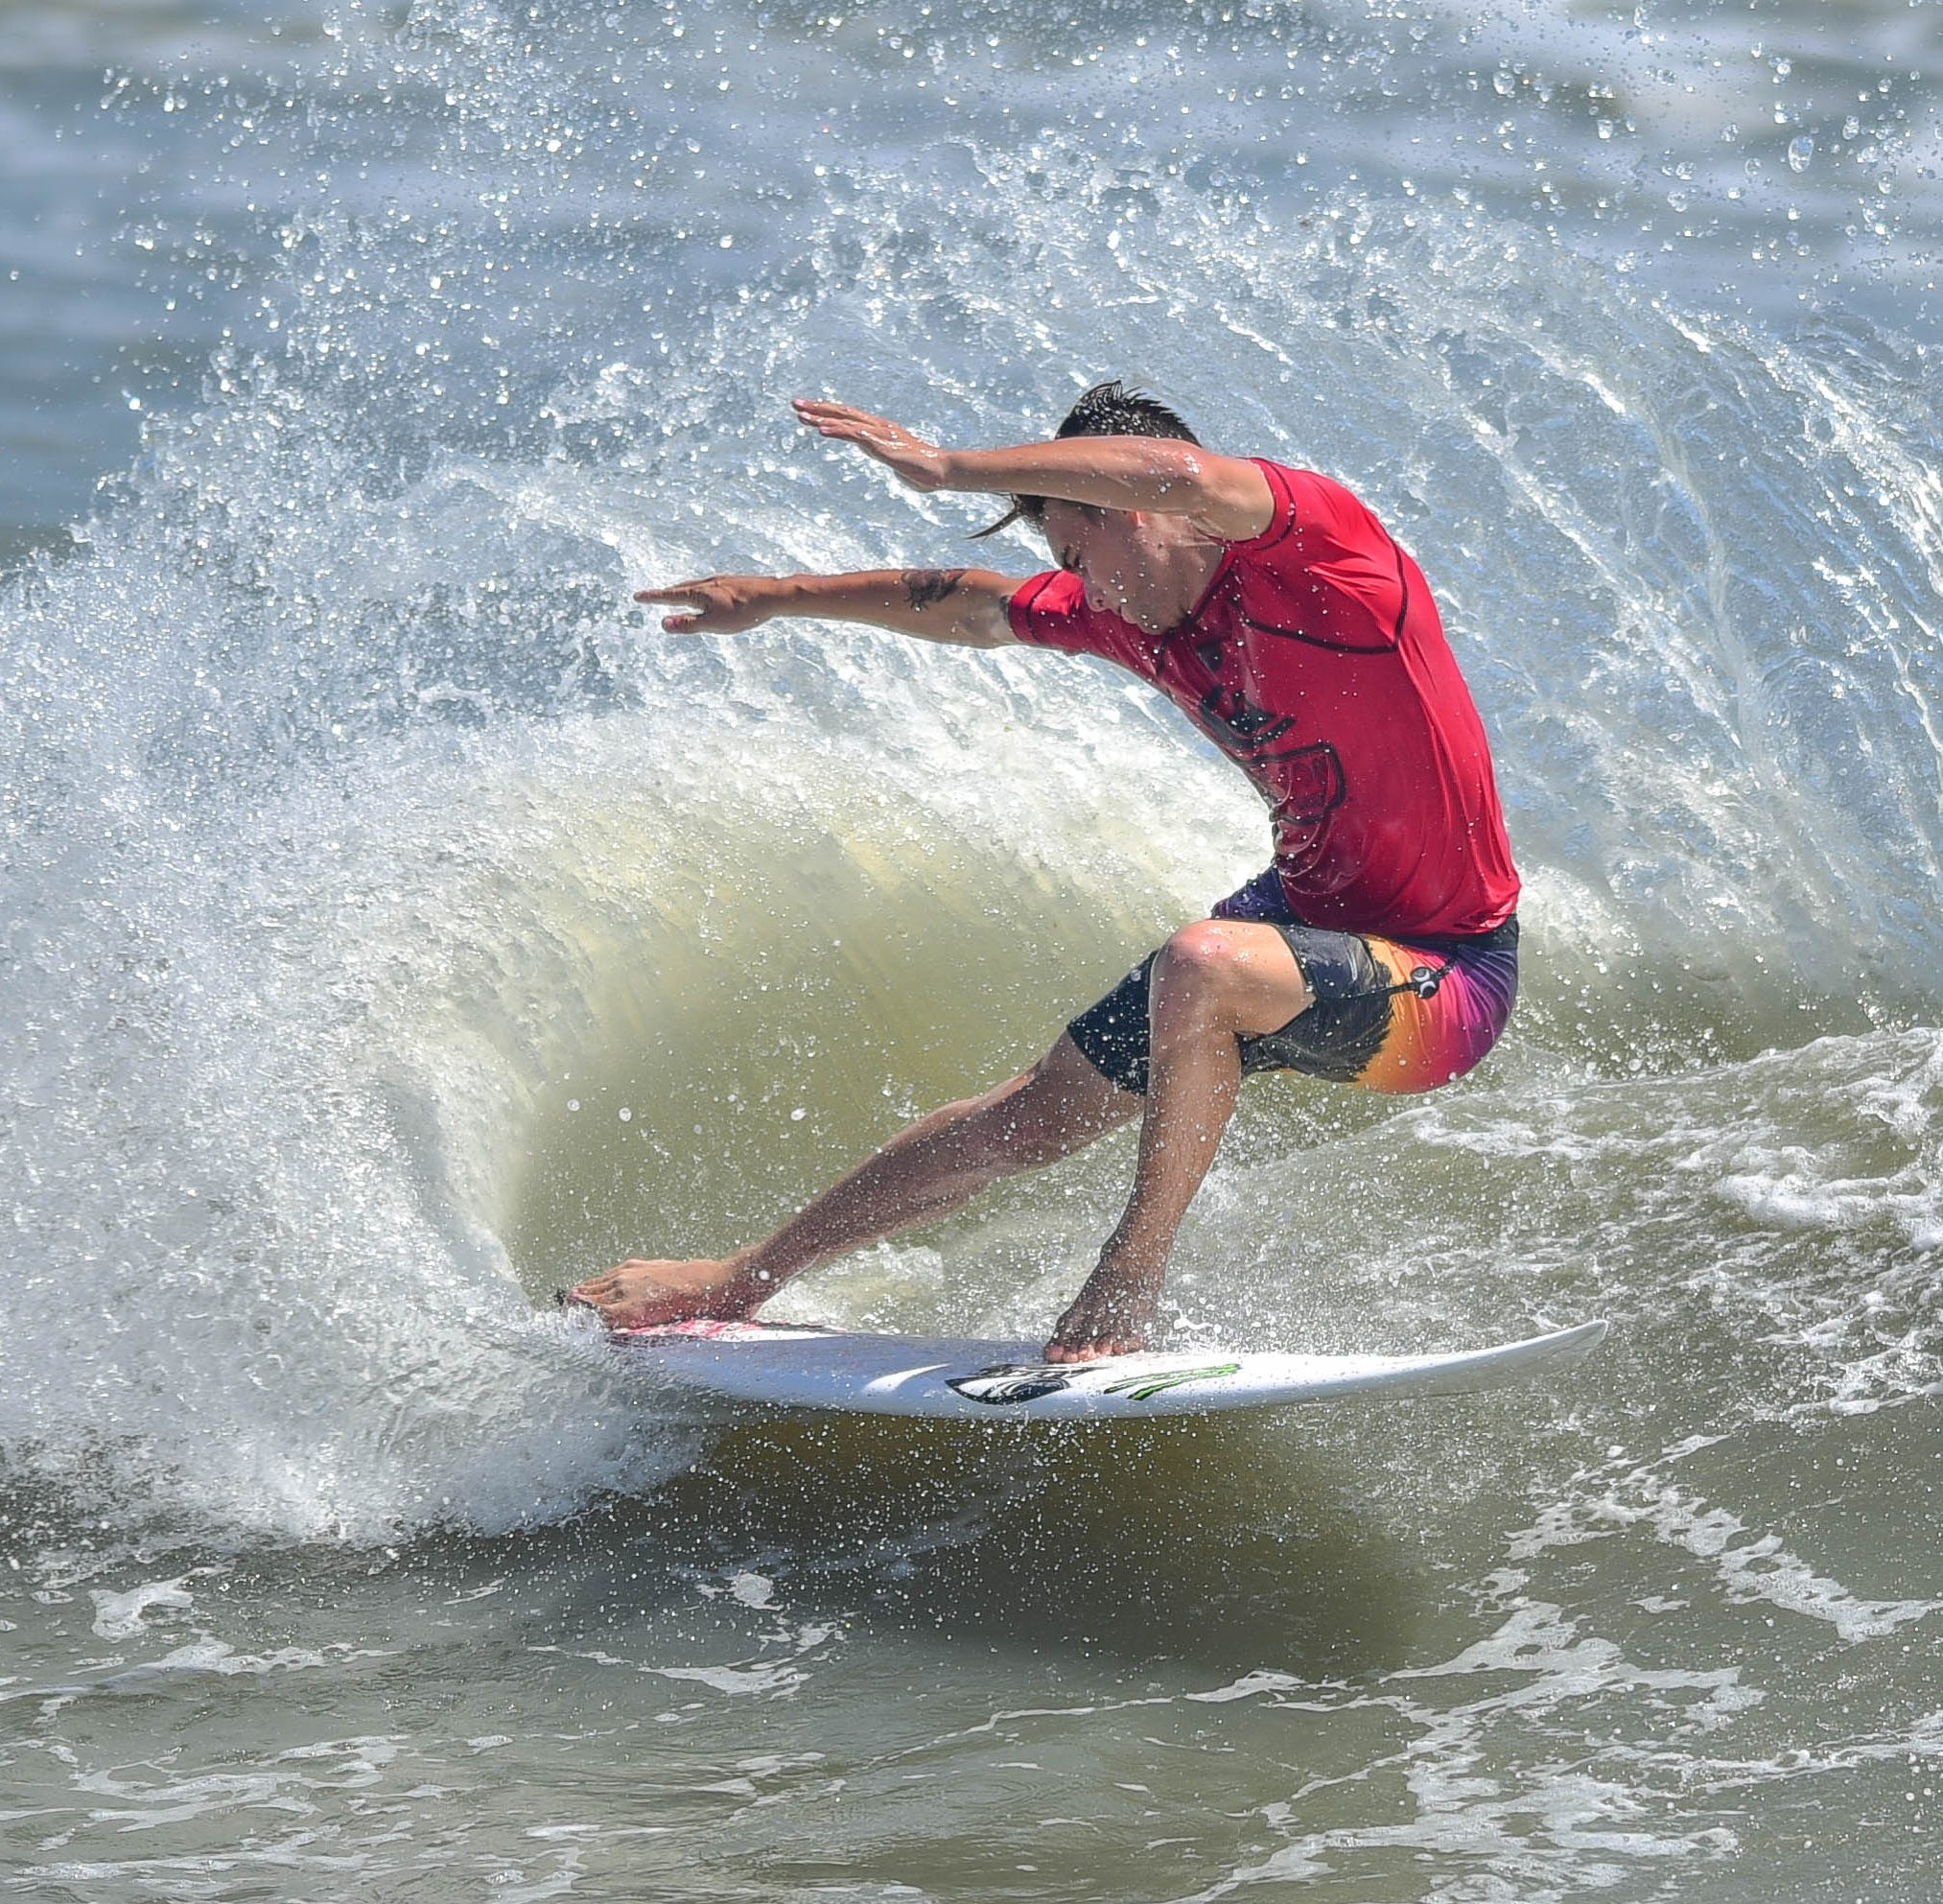 Surfing heats up on Day 2 of Beach 'N Boards fest